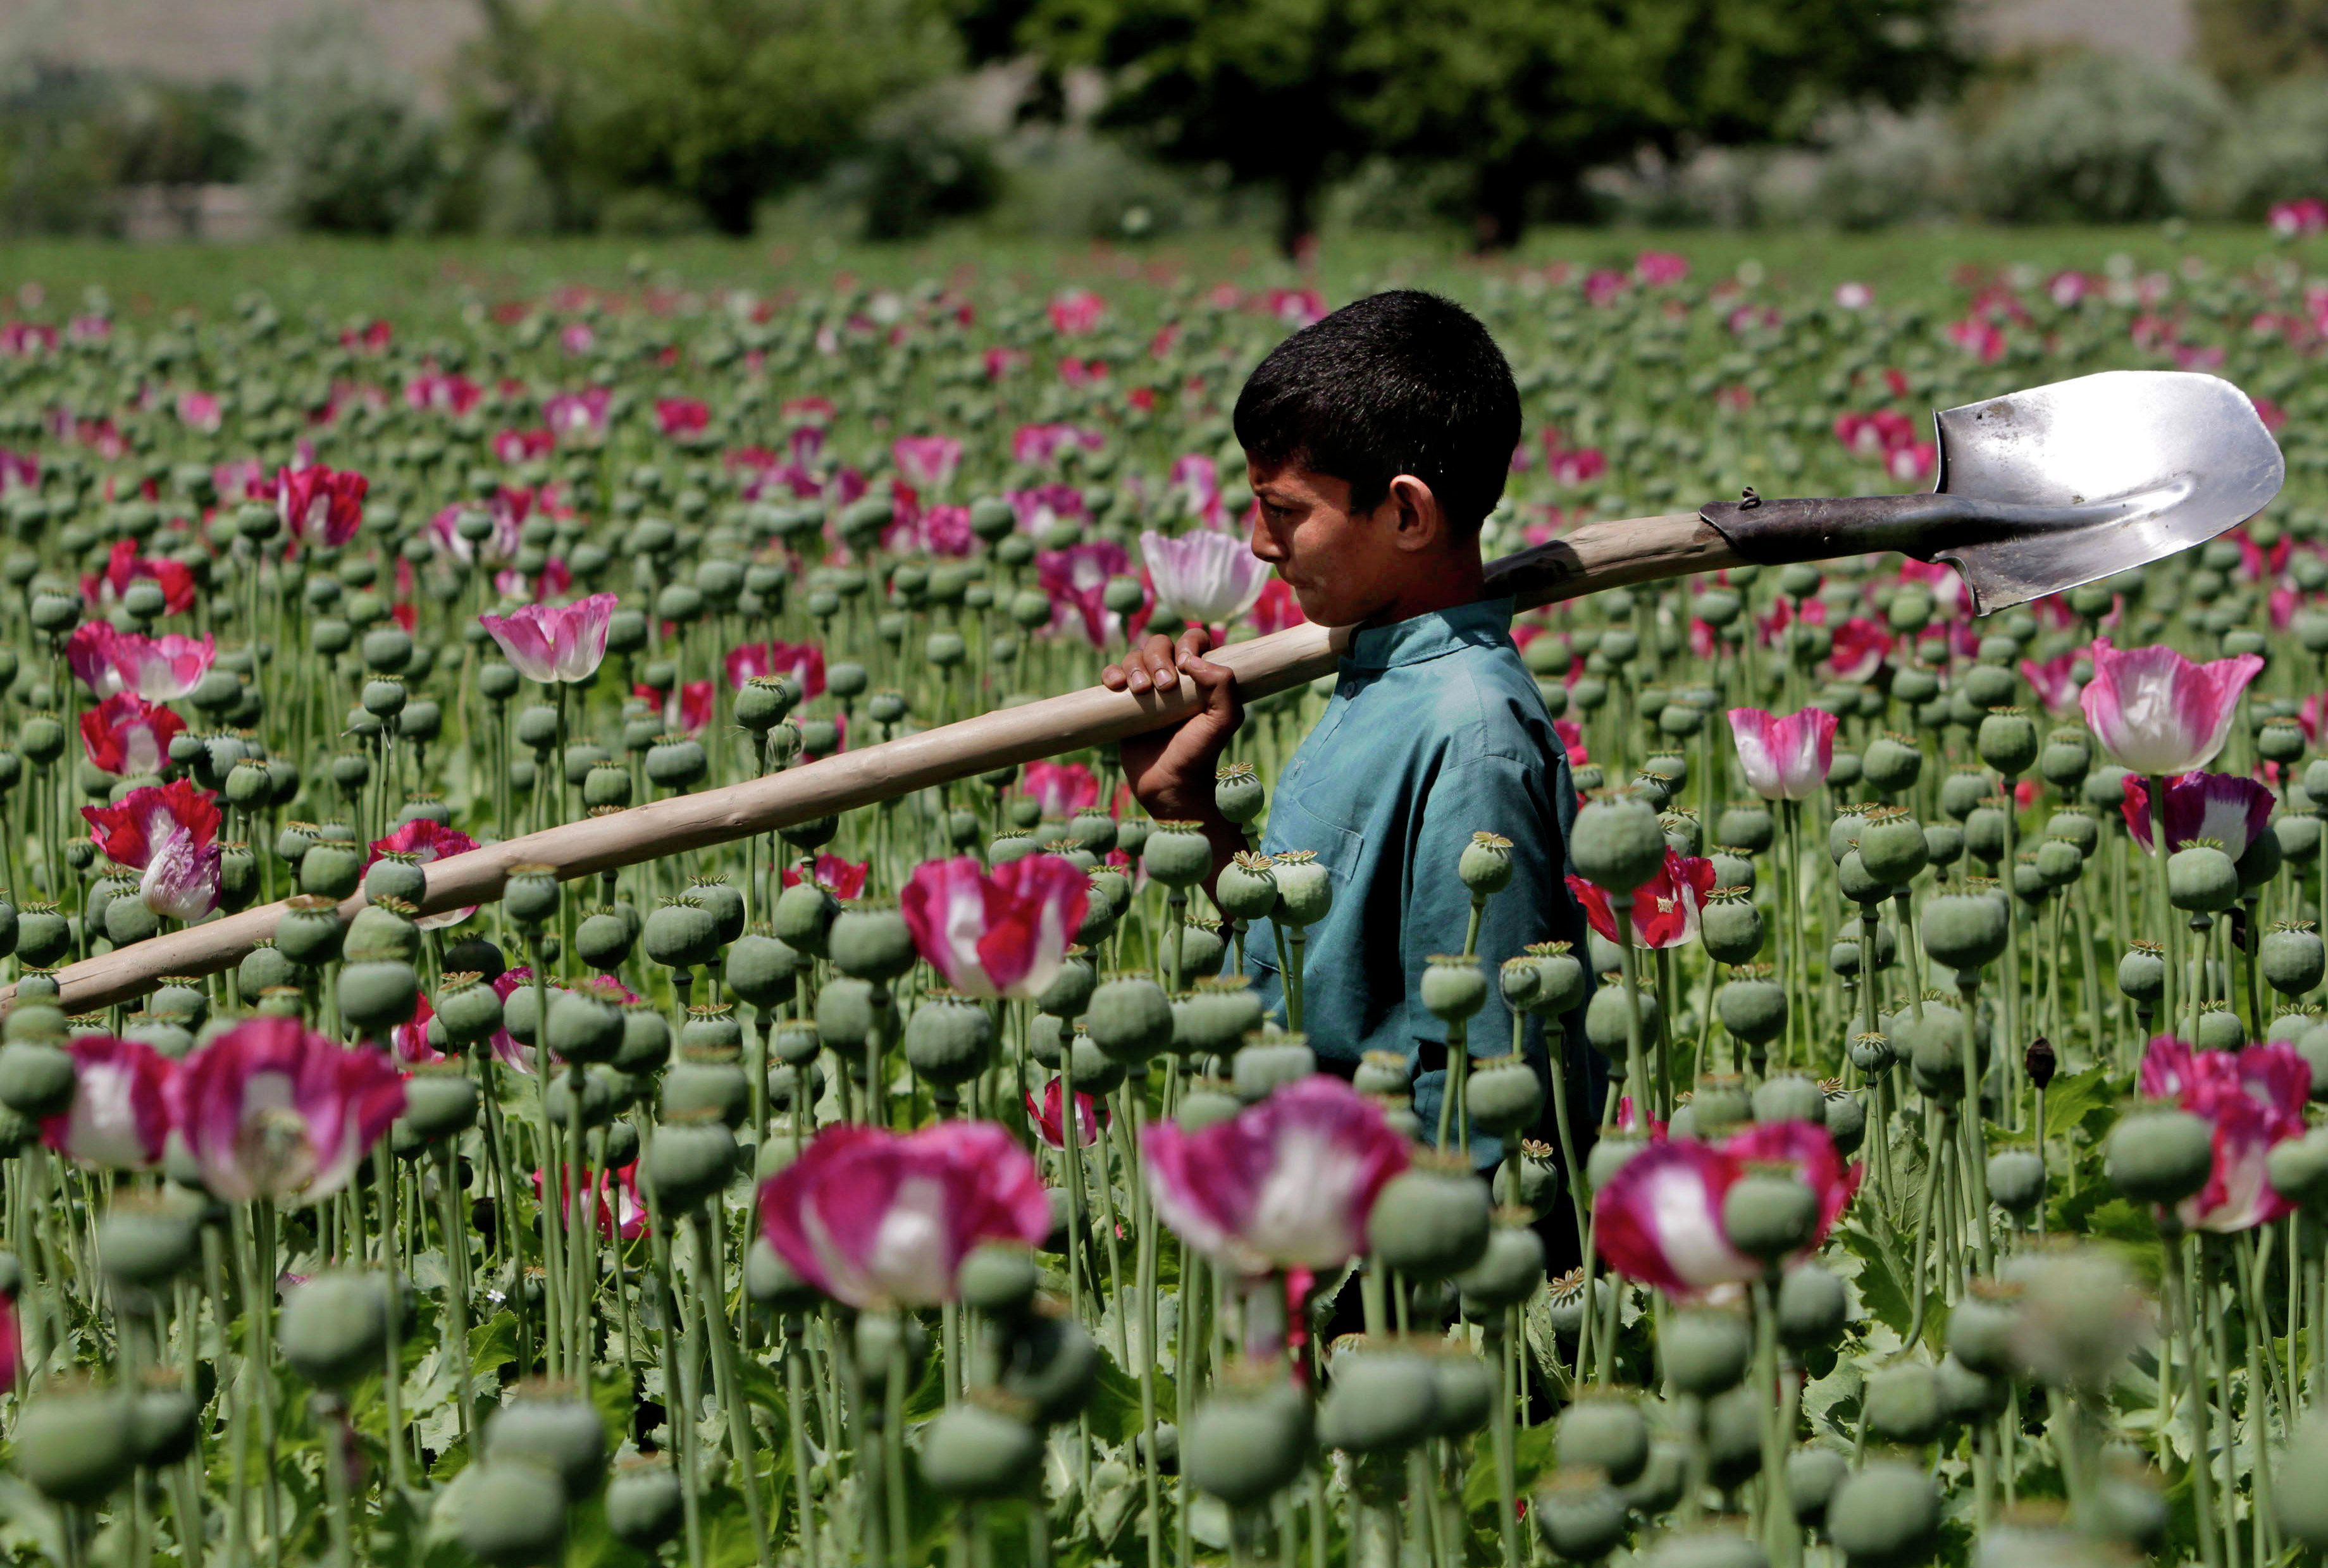 An Afghan boy walks through a poppy field in Khogyani district of Jalalabad east of Kabul, Afghanistan, Thursday, April 11, 2013. When foreign troops arrived in Afghanistan in 2001, one of their goals was to stem drug production. Instead, they have concentrated on fighting insurgents, and have often been accused of turning a blind eye to the poppy fields.